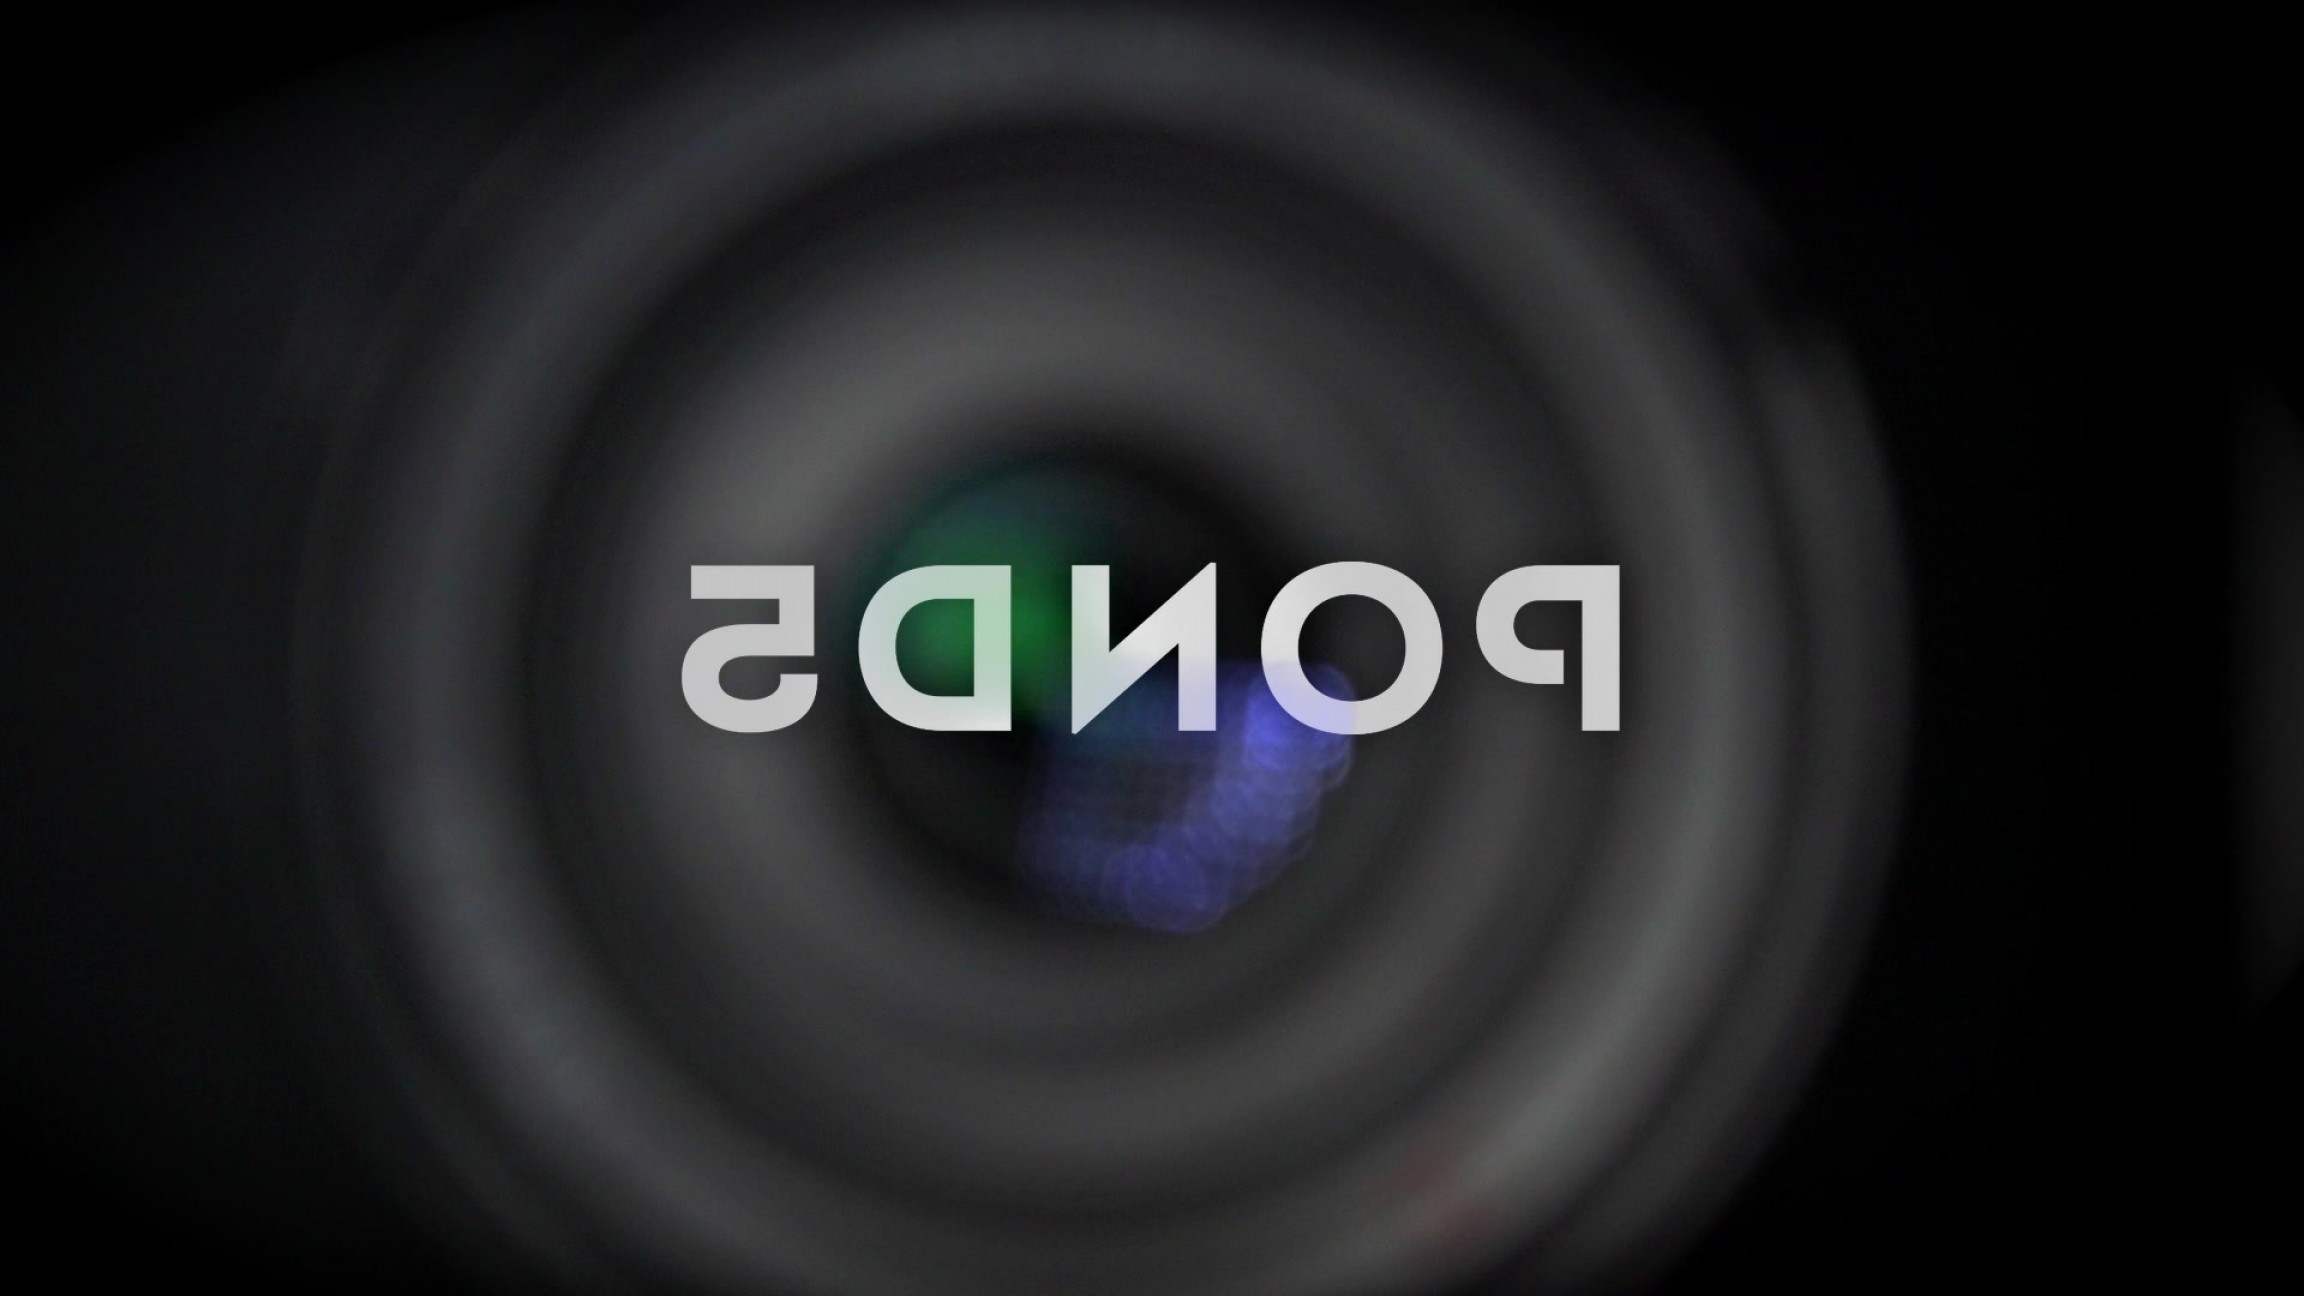 Hires Camera Lens Vector: Focus Camera Lens Black Background